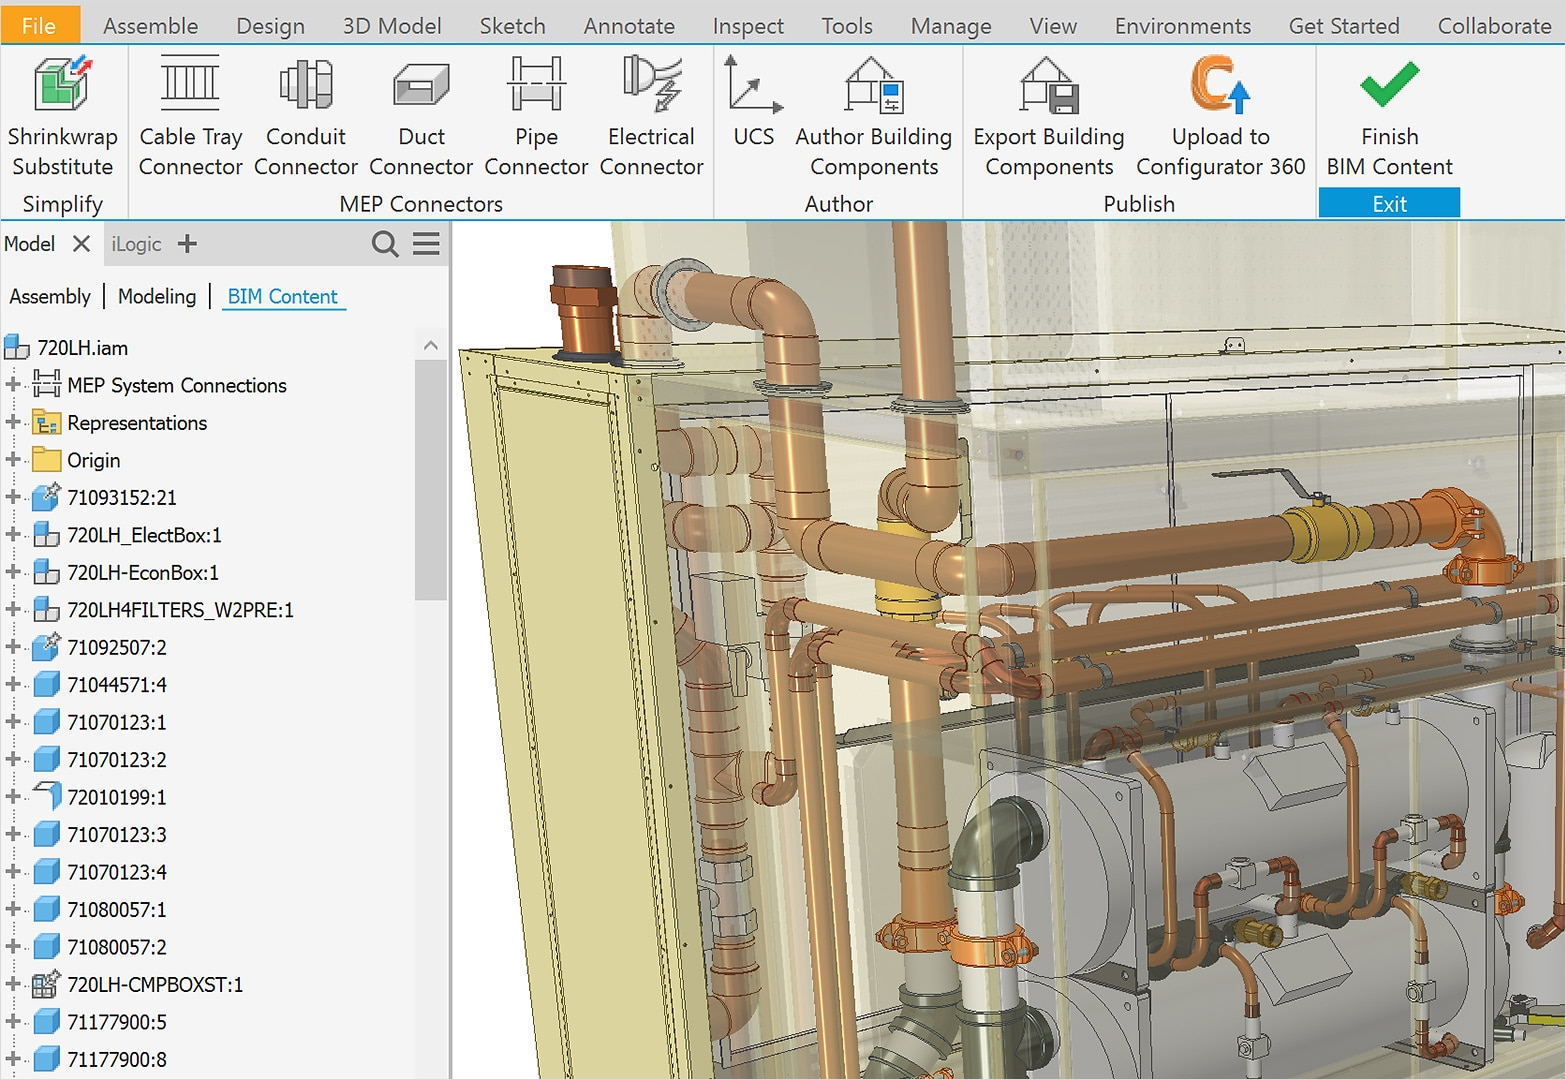 3d Cad Modeling Software Features Inventor 2020 Autodesk